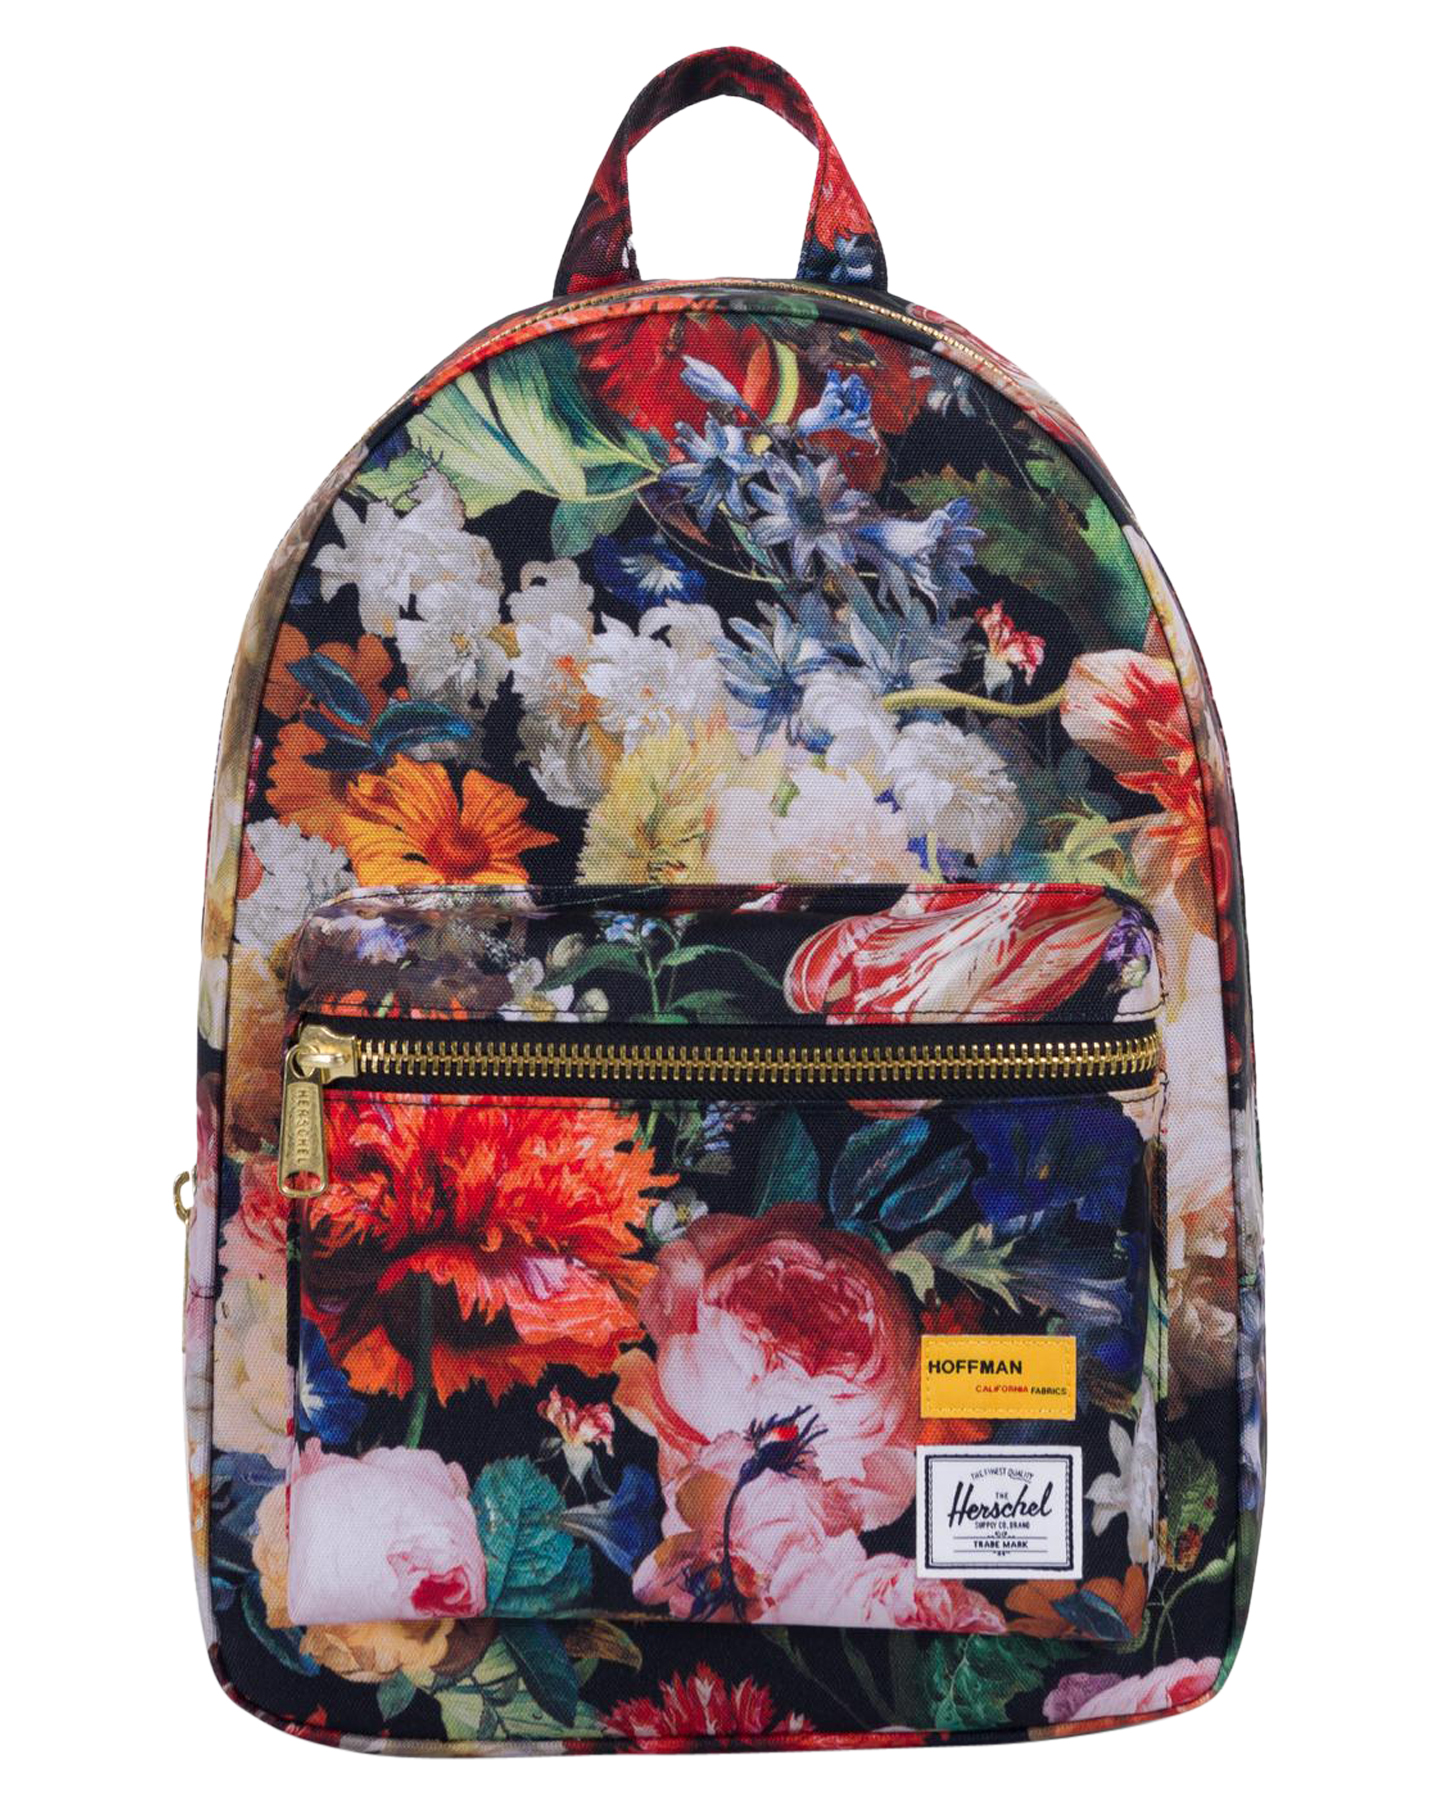 114a6b582ae New Herschel Supply Co Women s Hoffman Grove X Small Backpack Fall Floral  N A